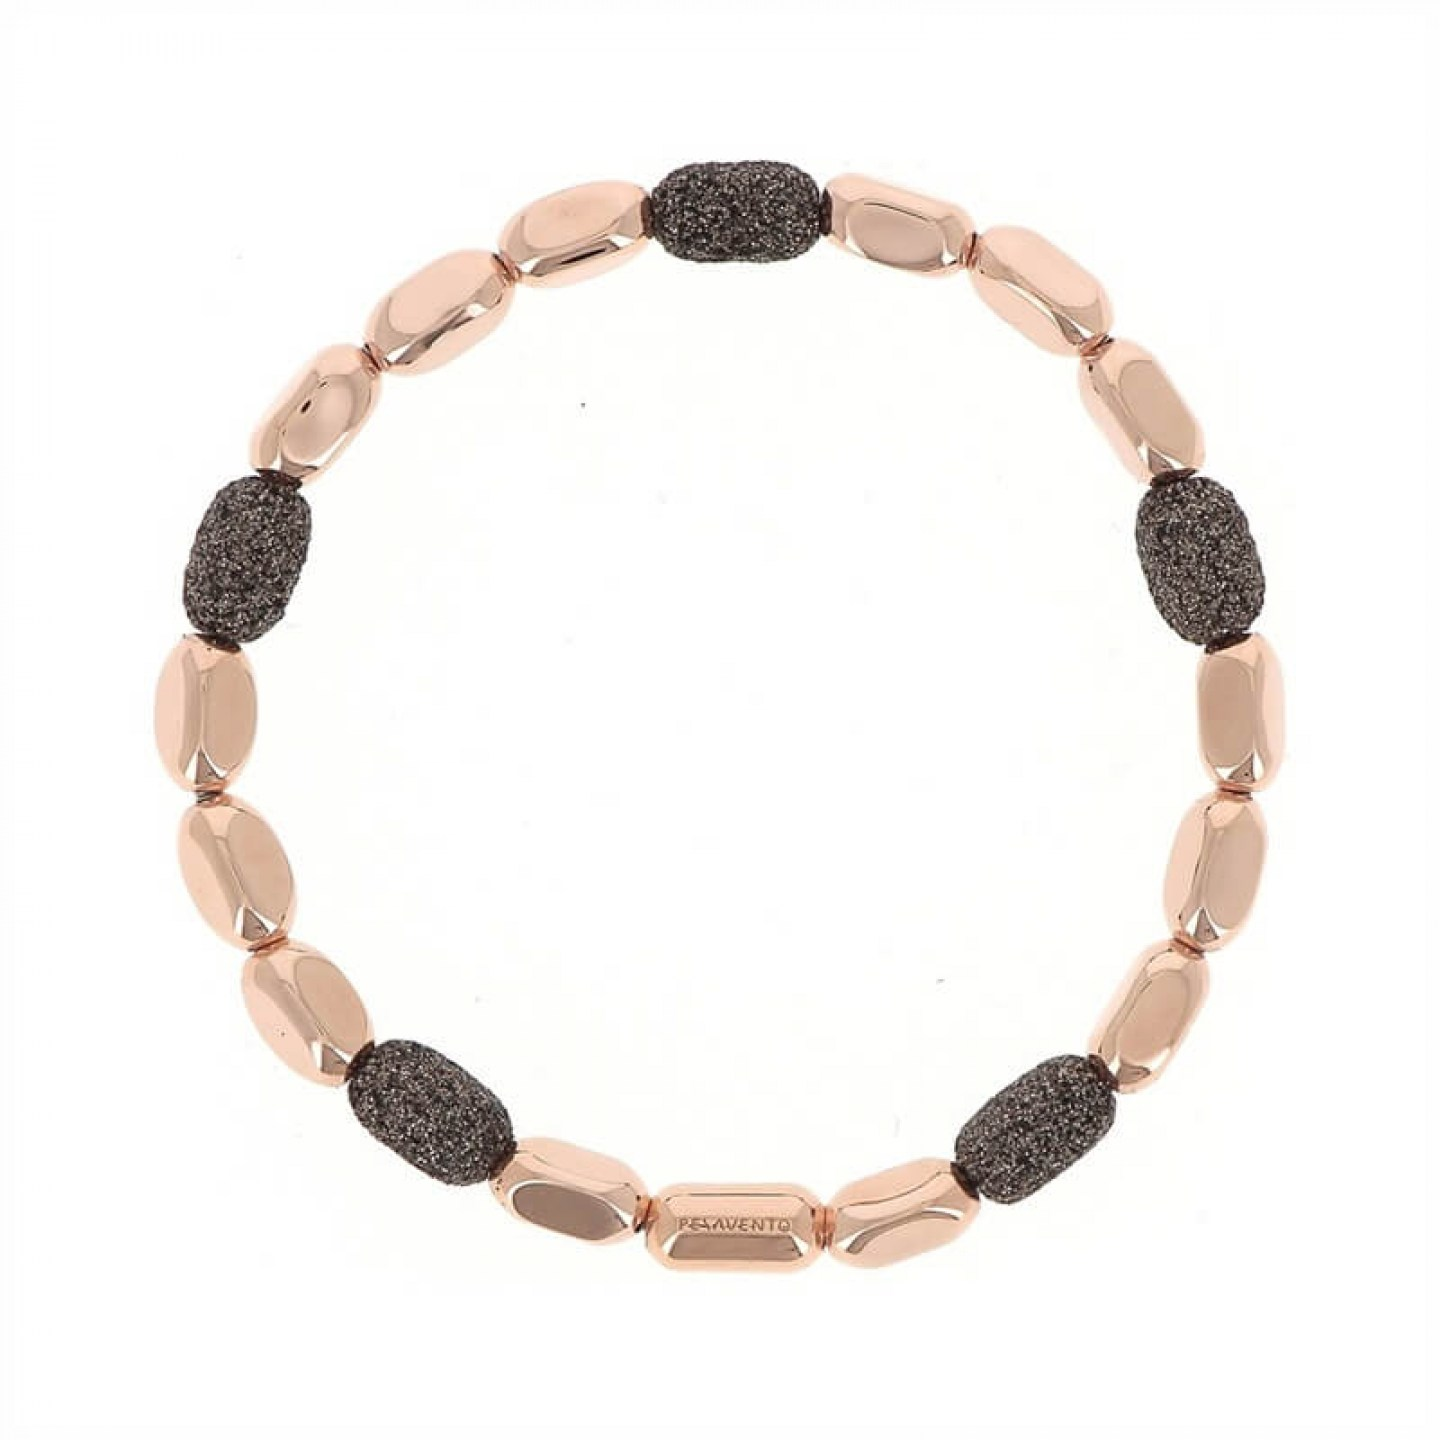 Polvere Chain bracelet Sterling Silver with an 18K Rose Gold Vermeil and Brown Dust